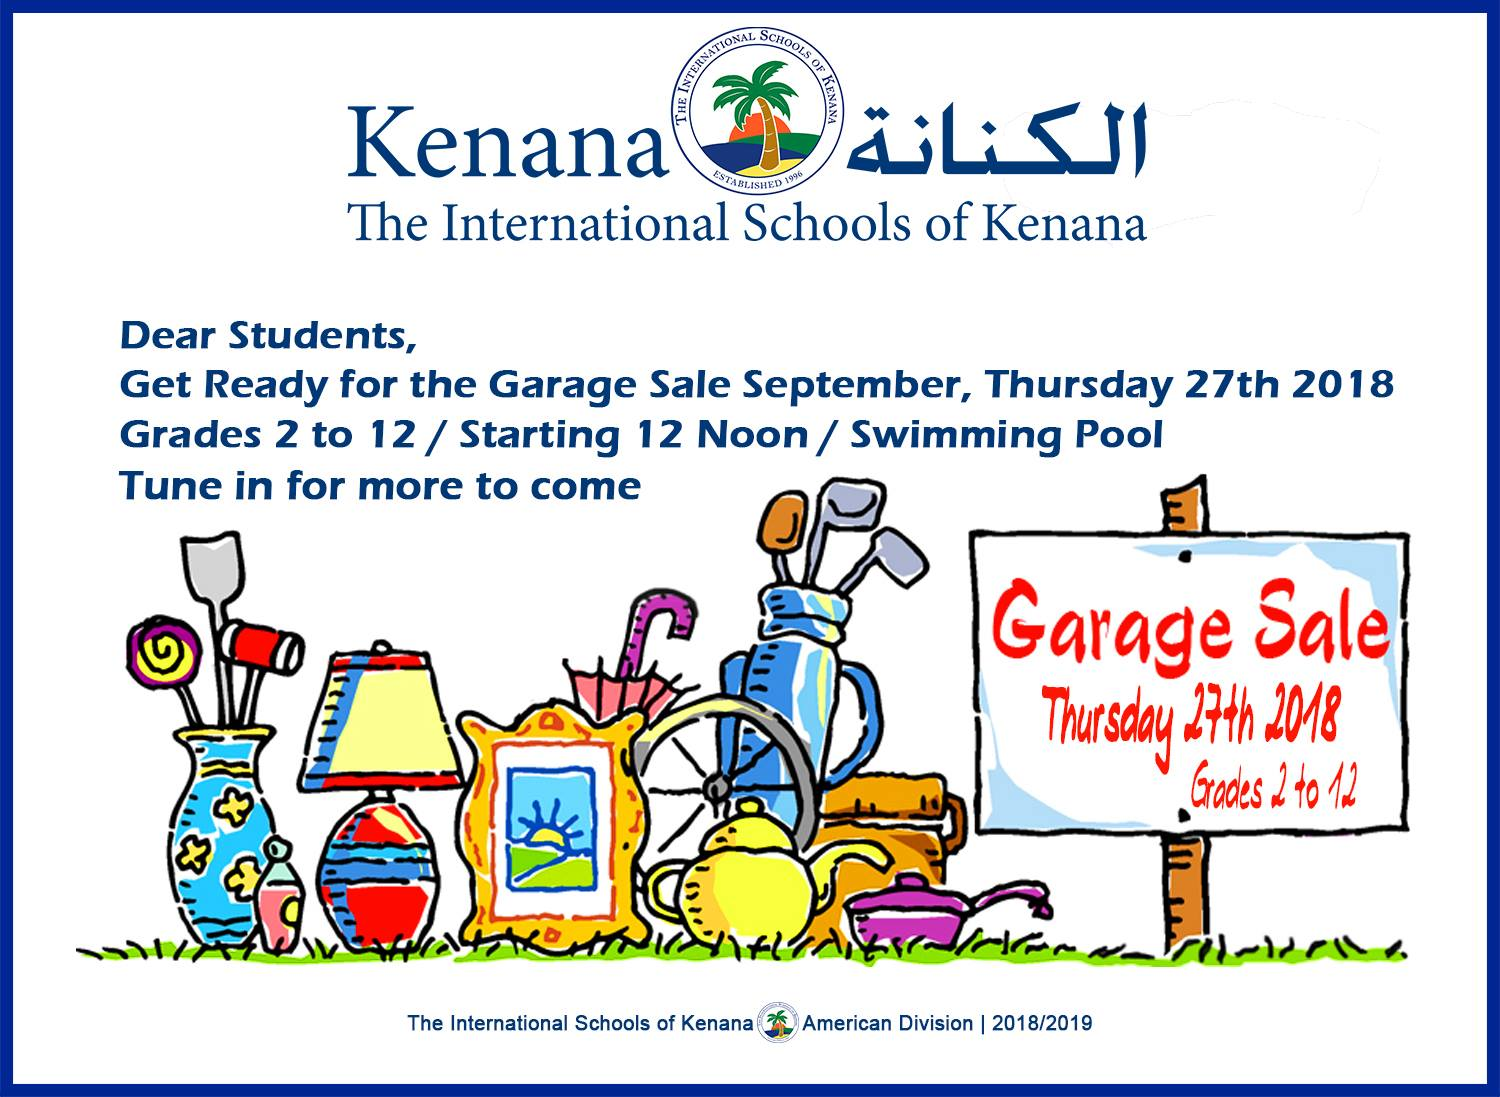 International Schools of Kenana | American Division - Garage Sale